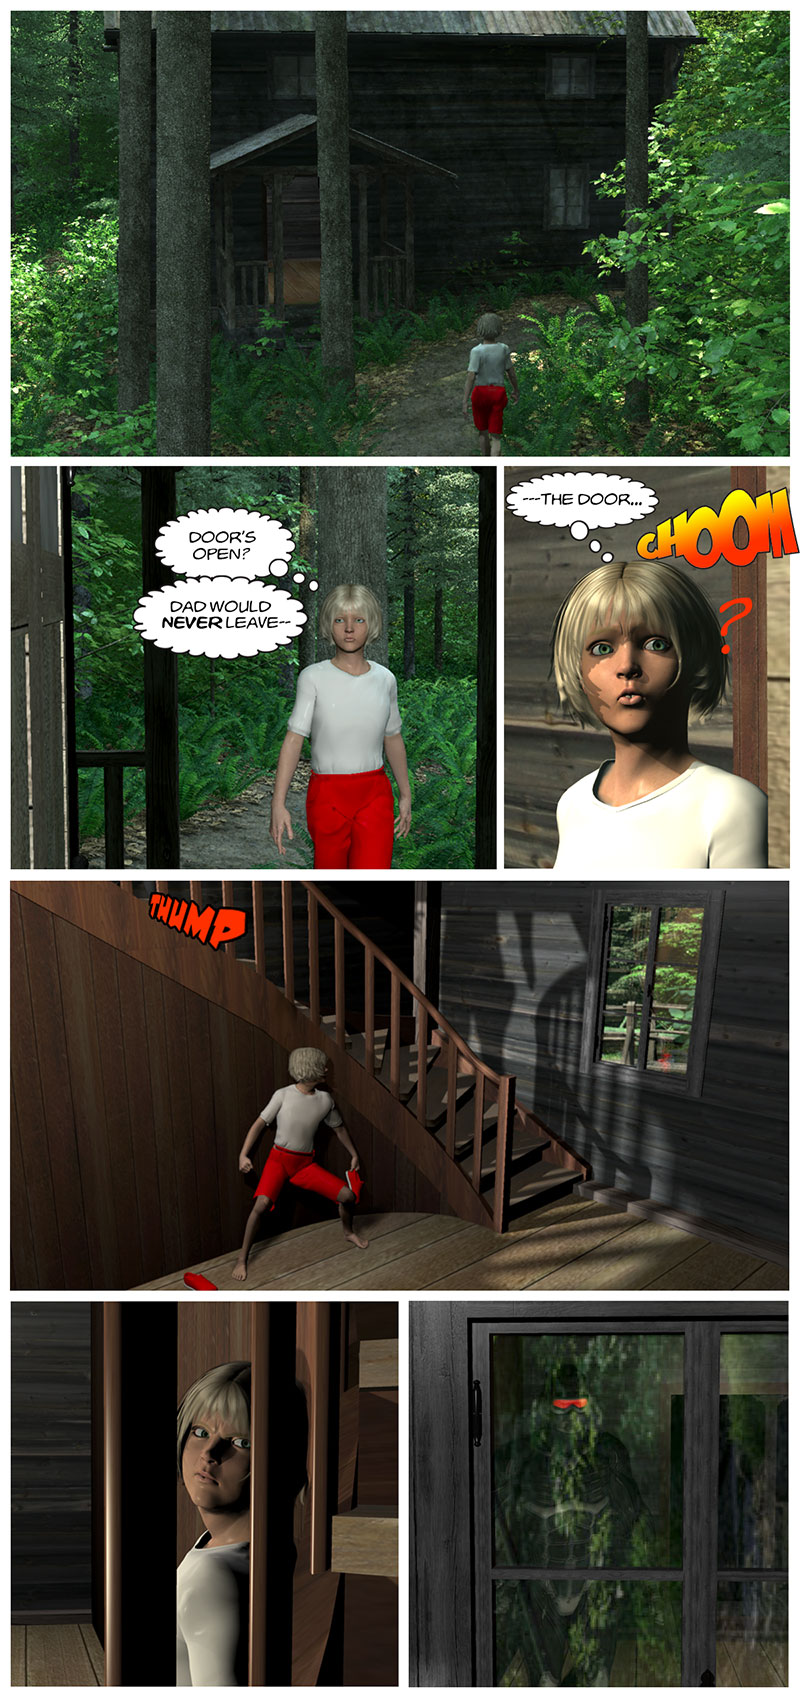 Chapter 1, page 4 – an intruder appears